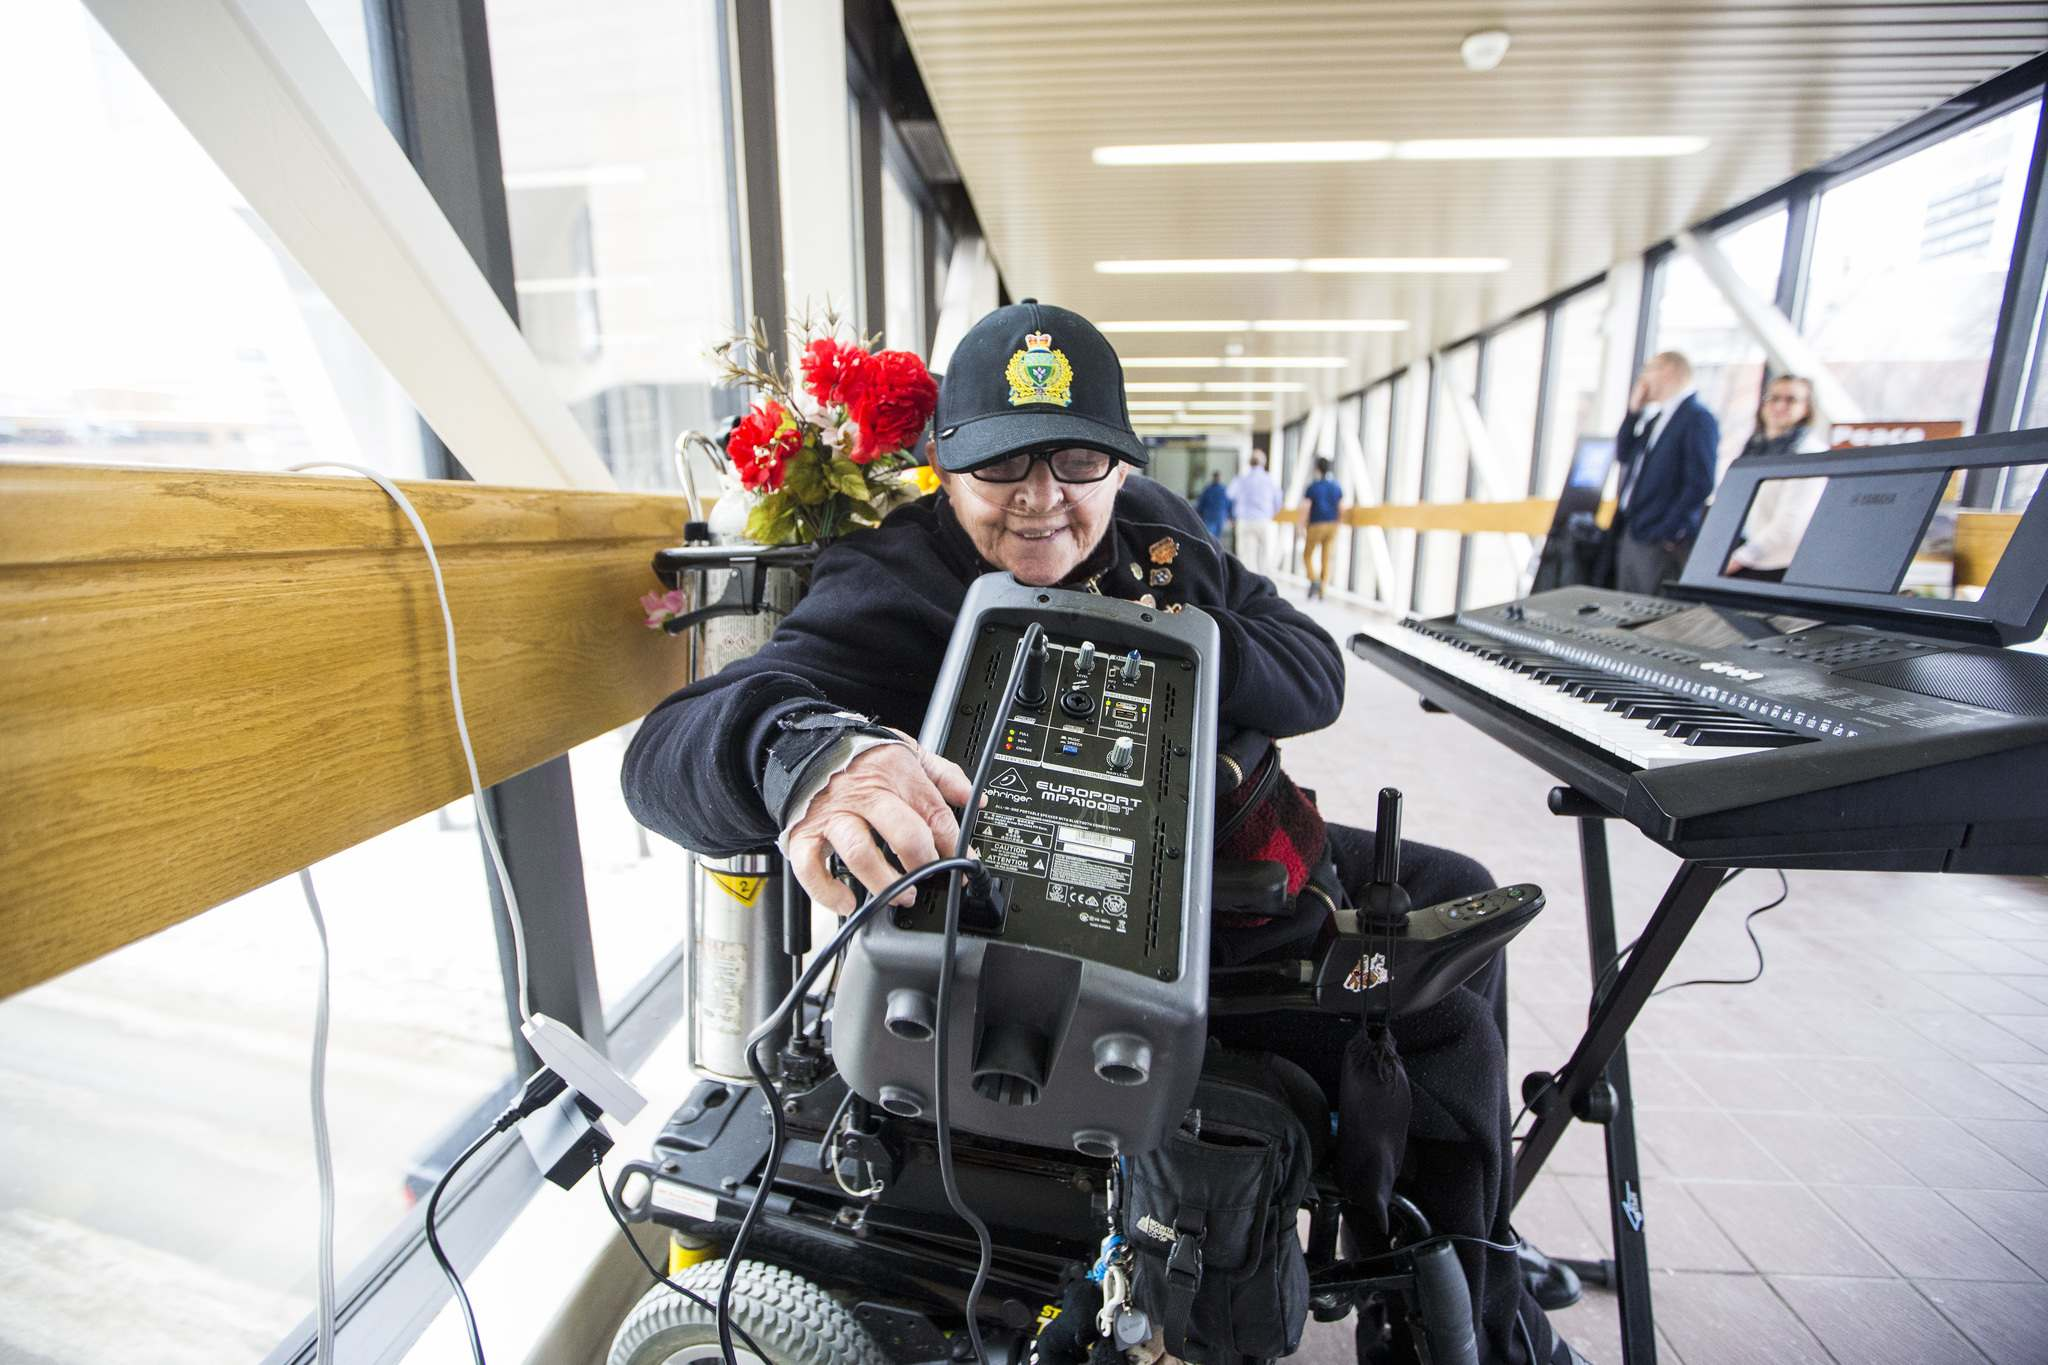 Olive Yaremko hopes to brighten the day of passers-by in the skywalks downtown.  (Mikaela MacKenzie / Winnipeg Free Press)